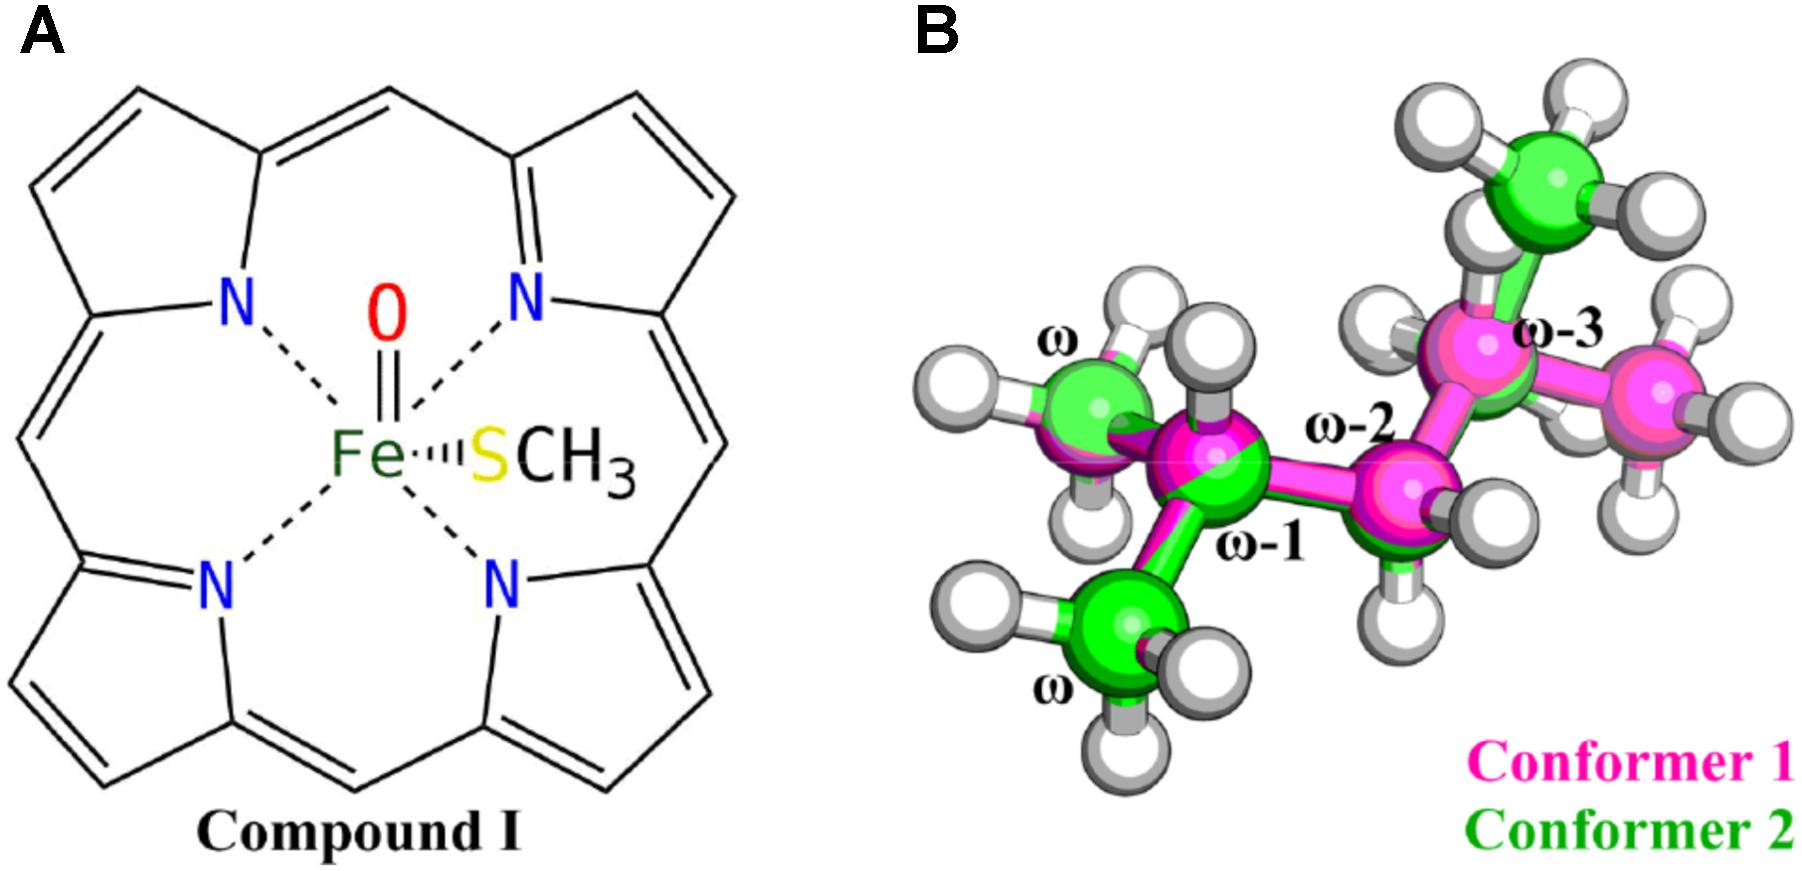 Frontiers | Computational Insight Into Vitamin K1 ω-Hydroxylation by